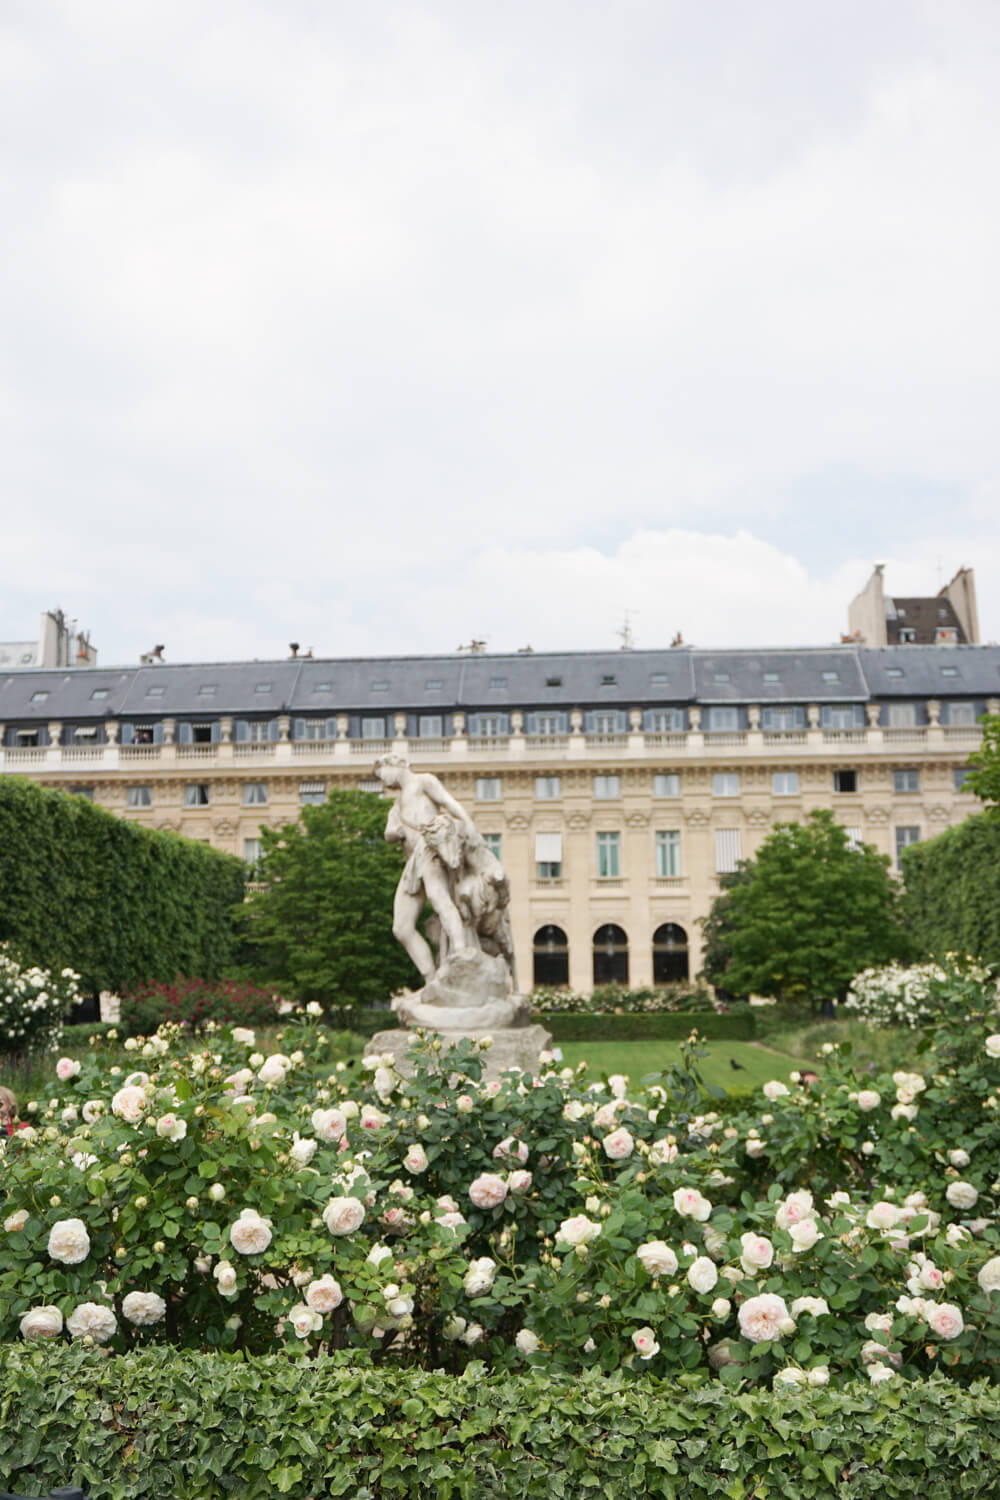 A lovely 5 day Paris itinerary